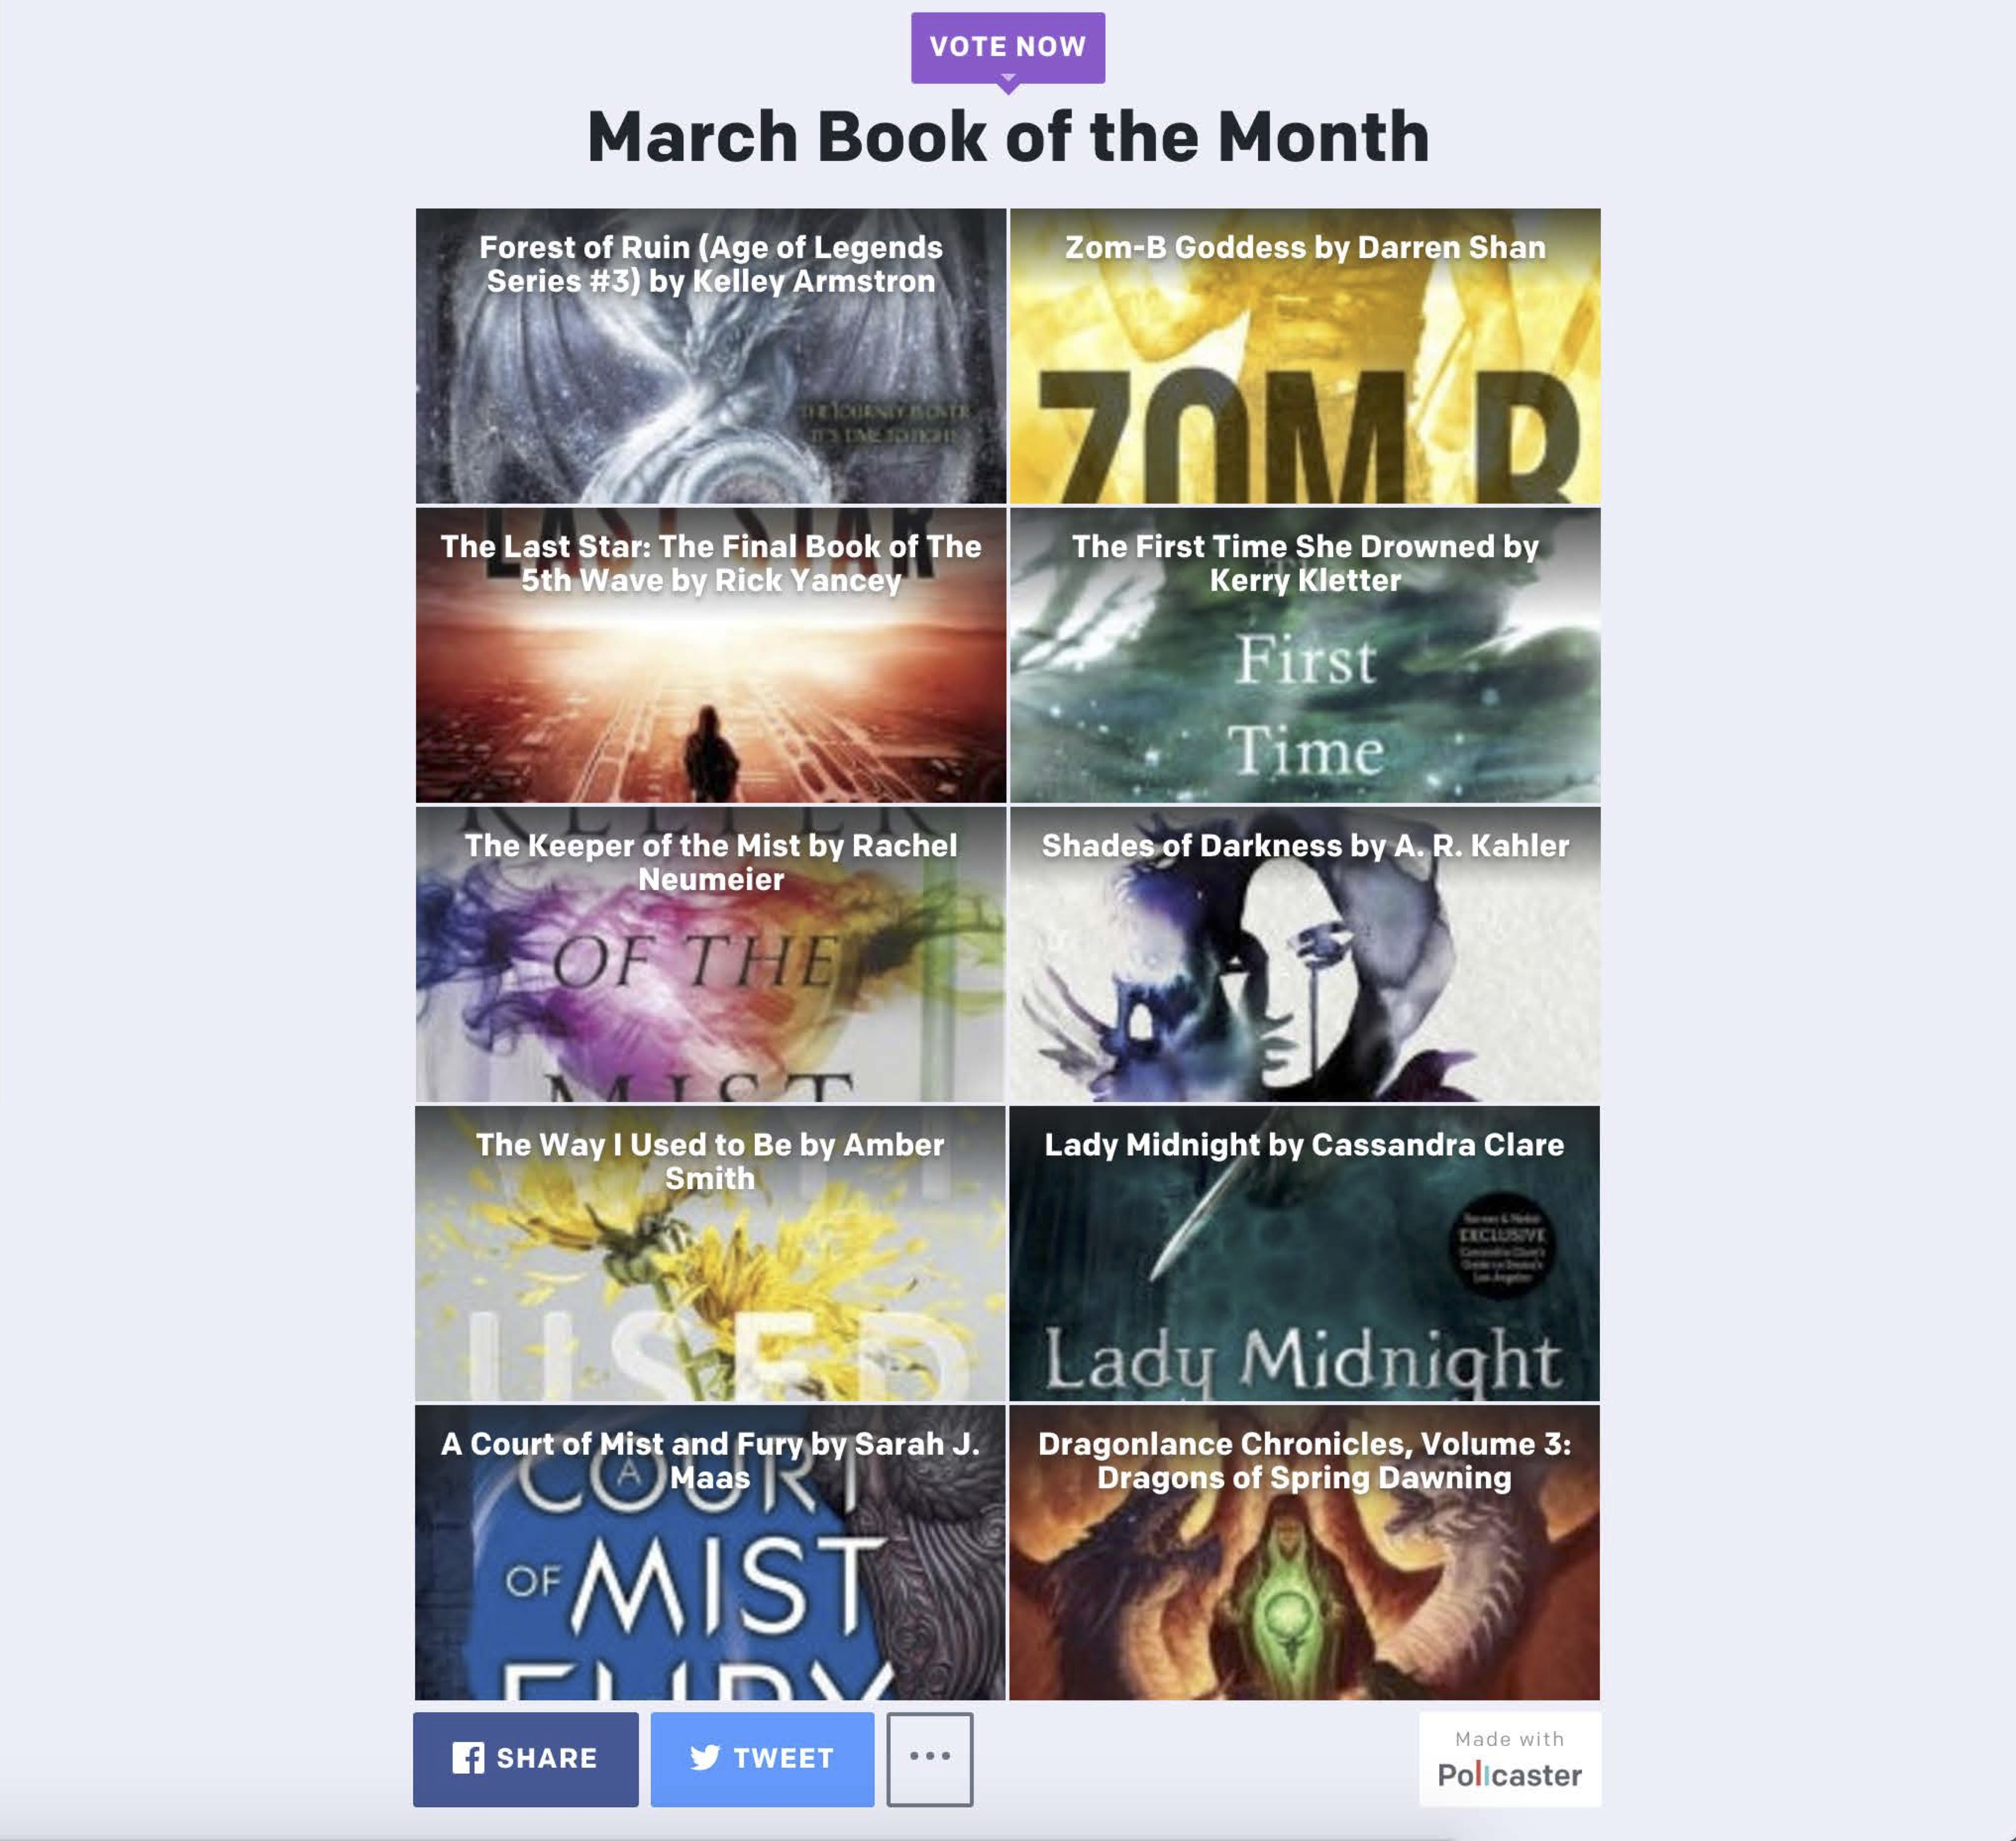 Book of the Month Poll